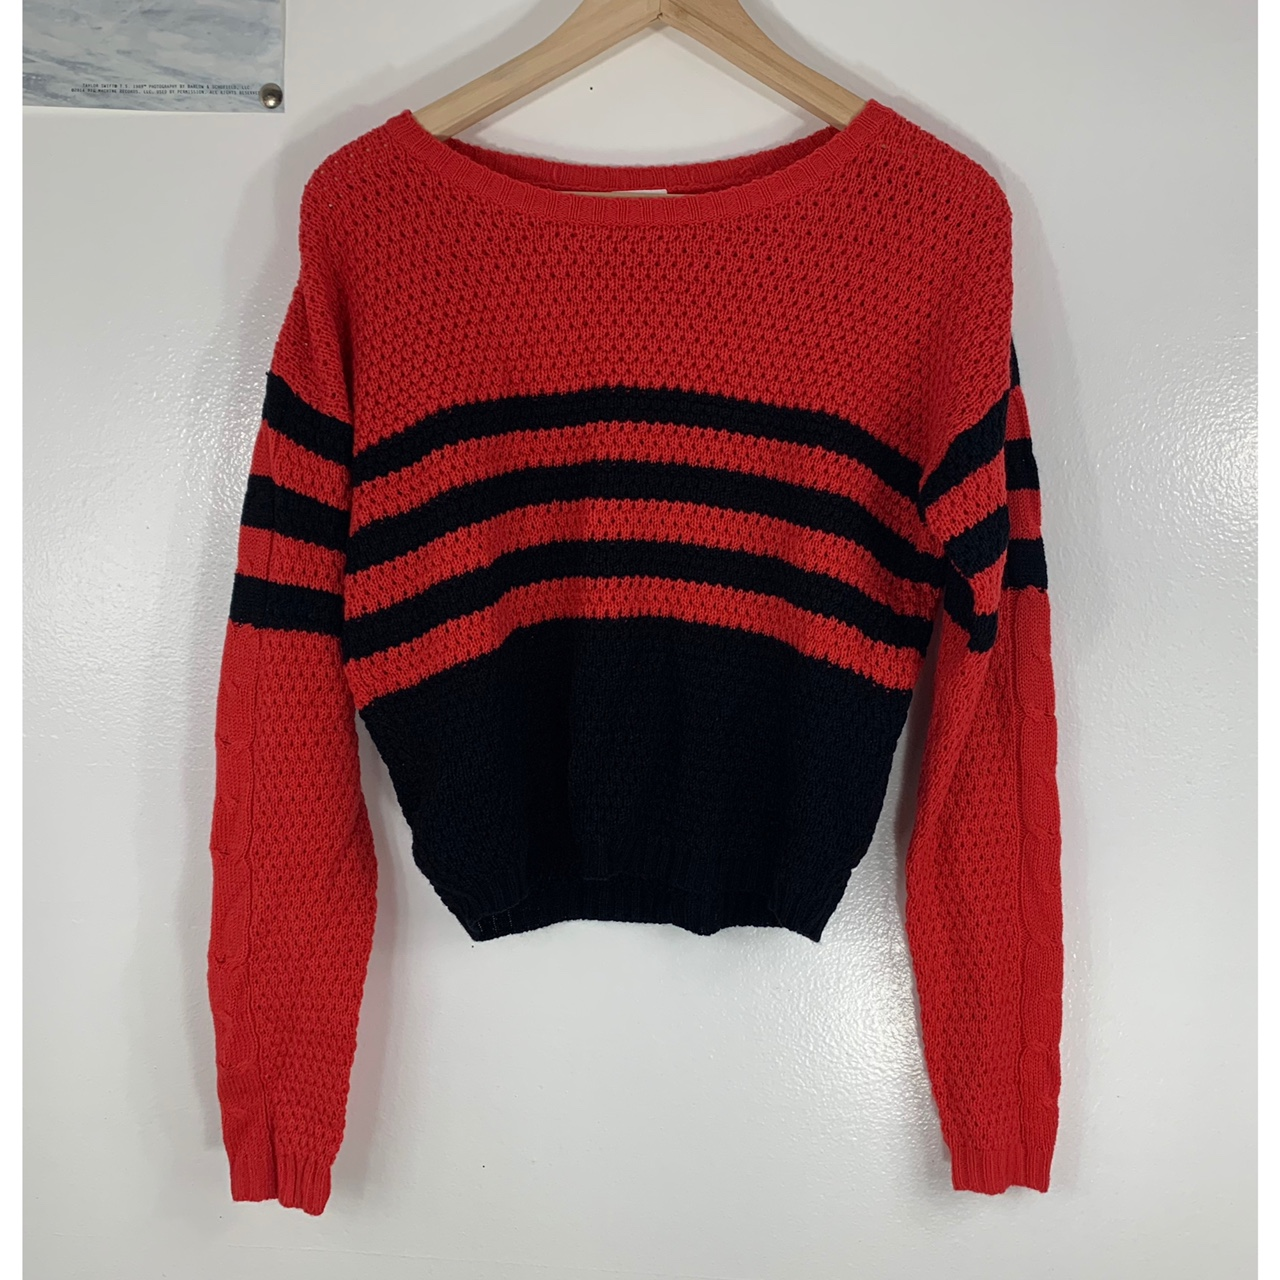 Product Image 1 - Sweater from ASOS by vila